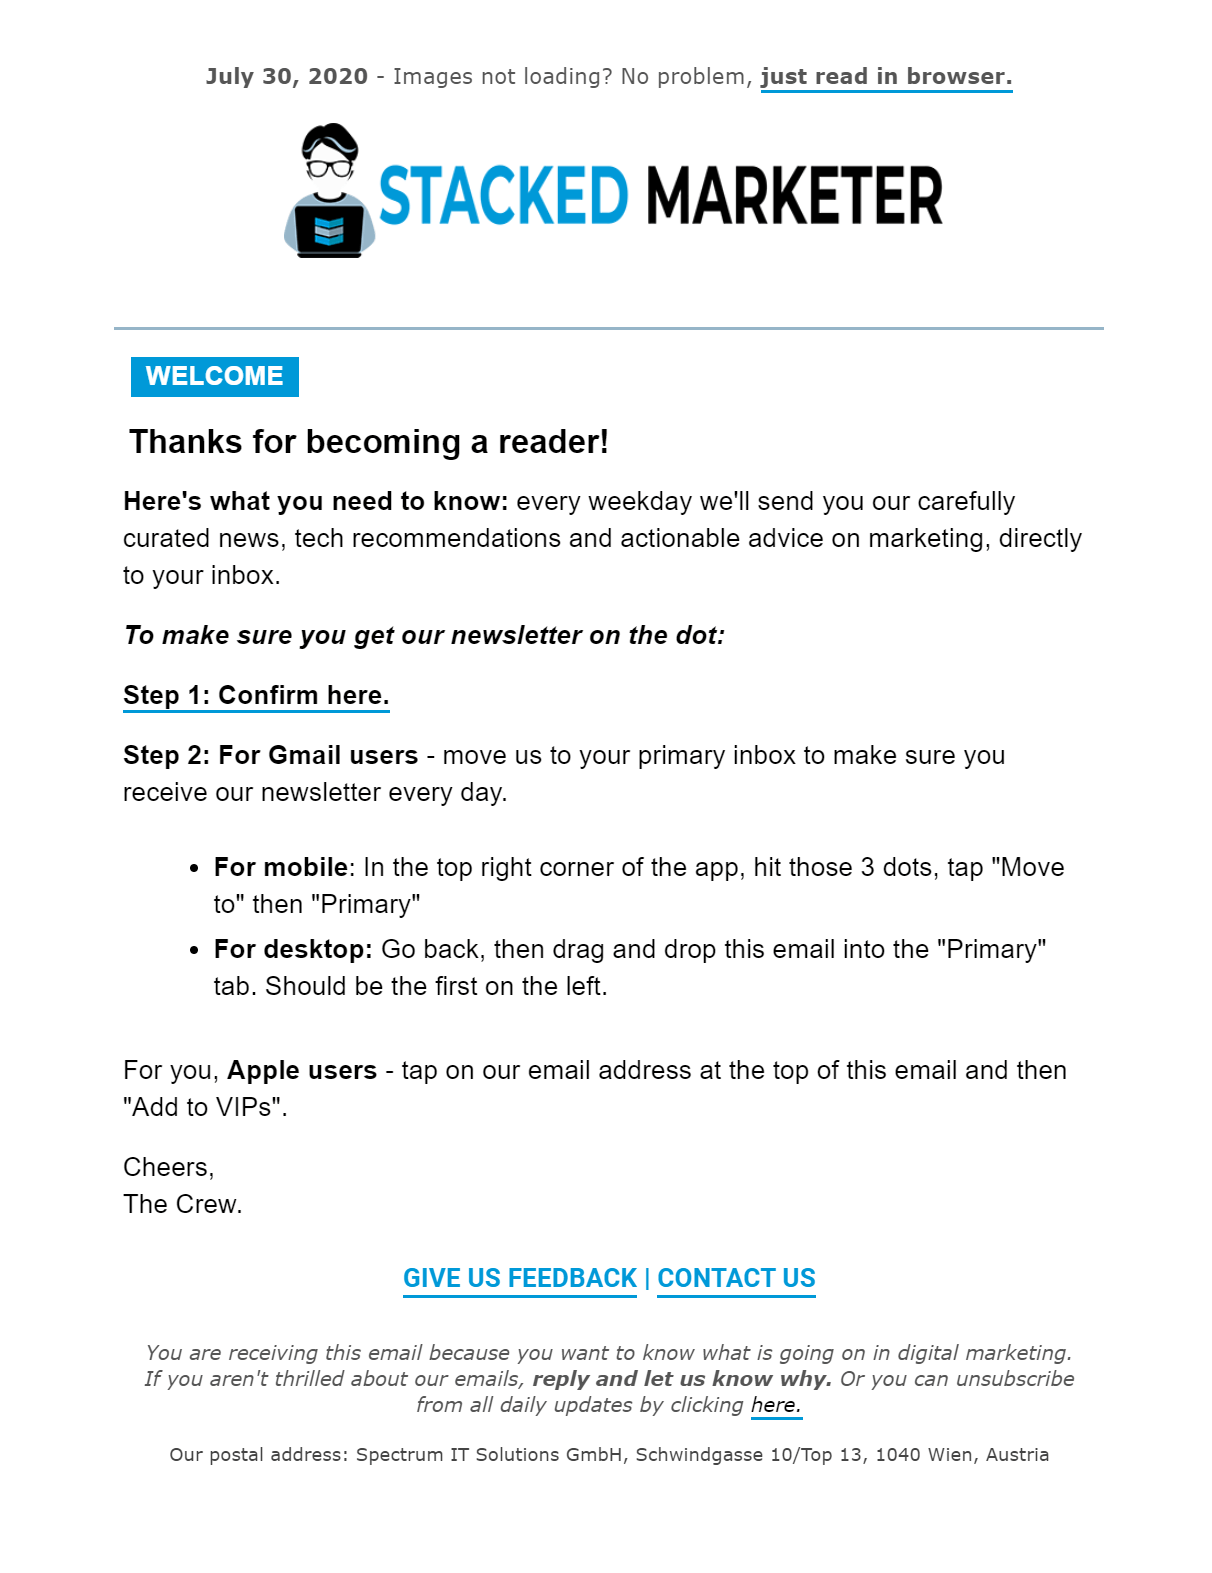 stacked marketer welcome template